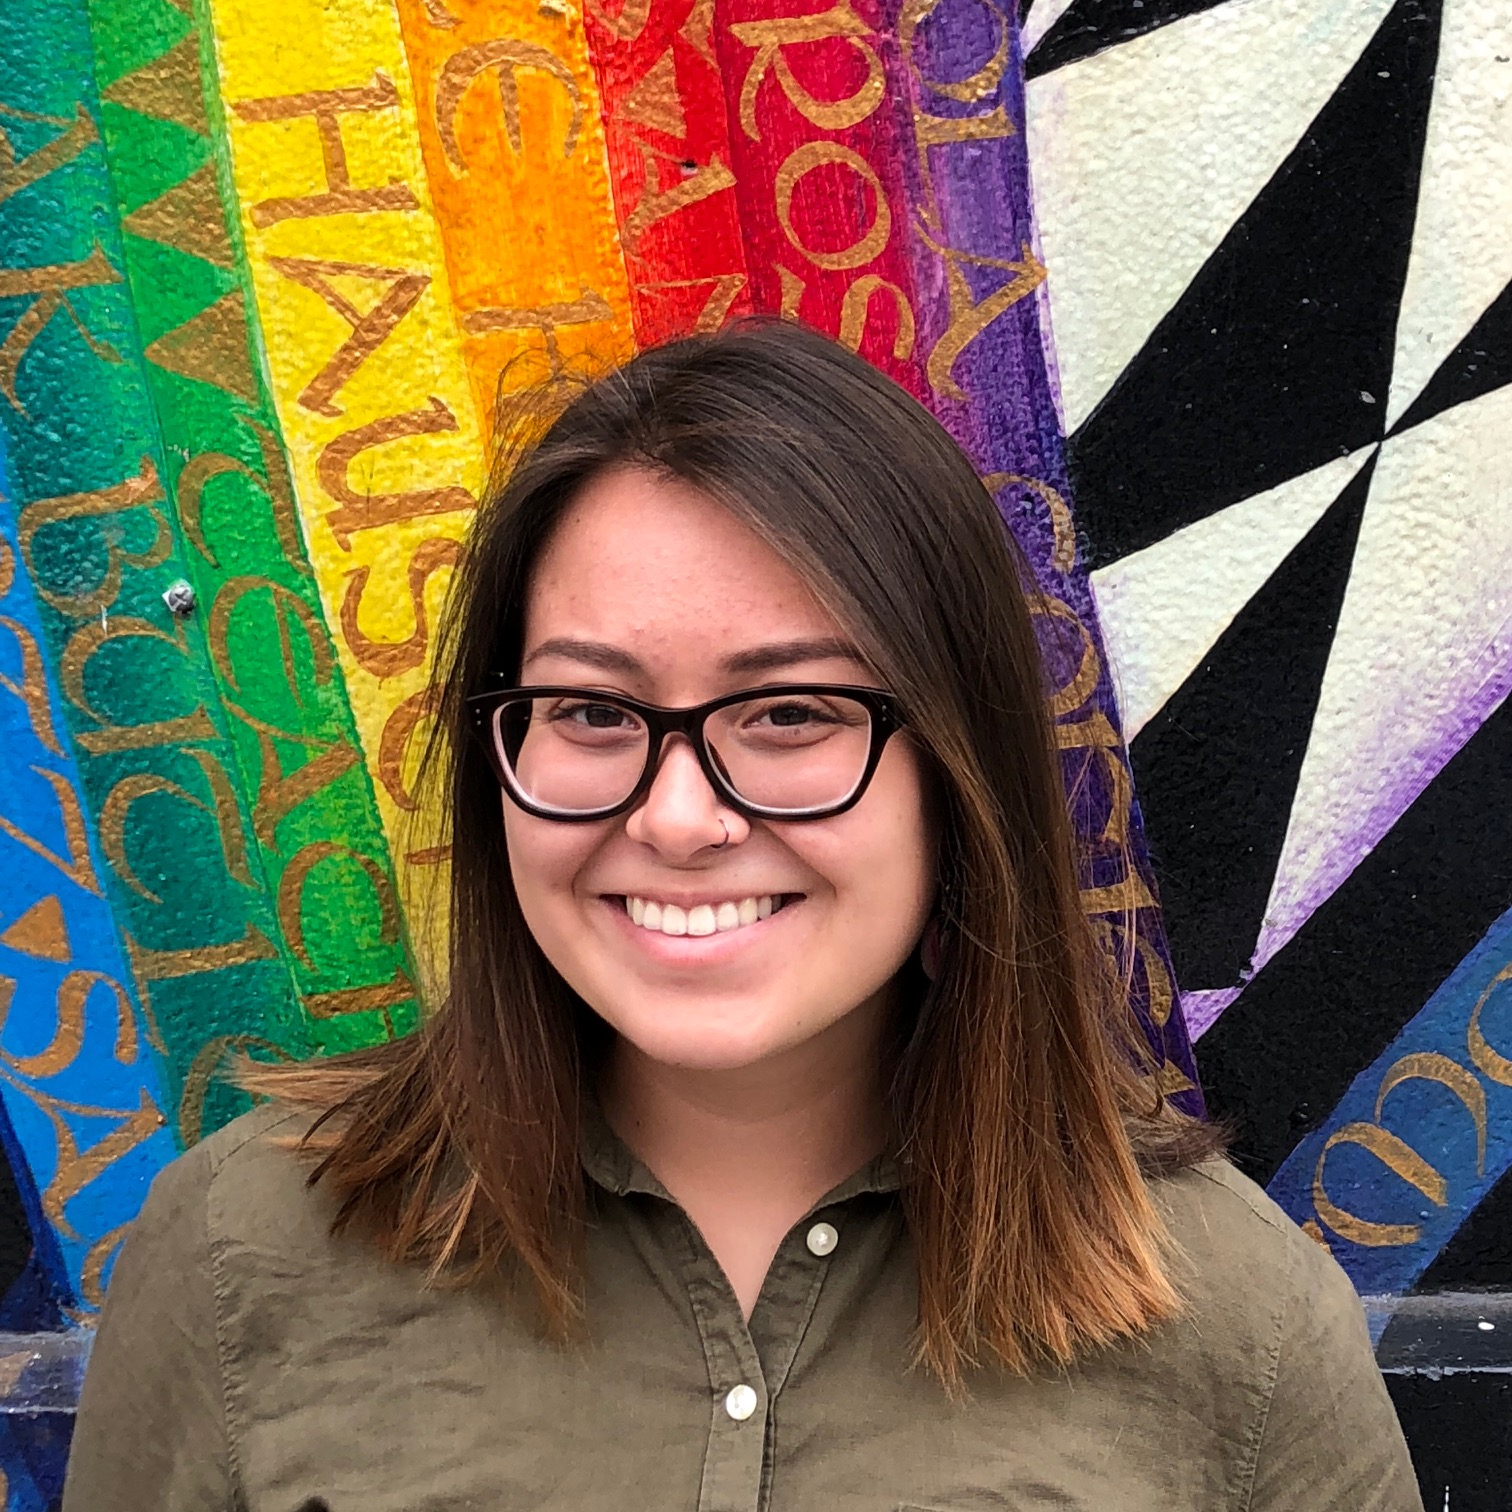 Our AMAZING Volunteer Coordinator and AmeriCorps VISTA member Kiara Quintanar!